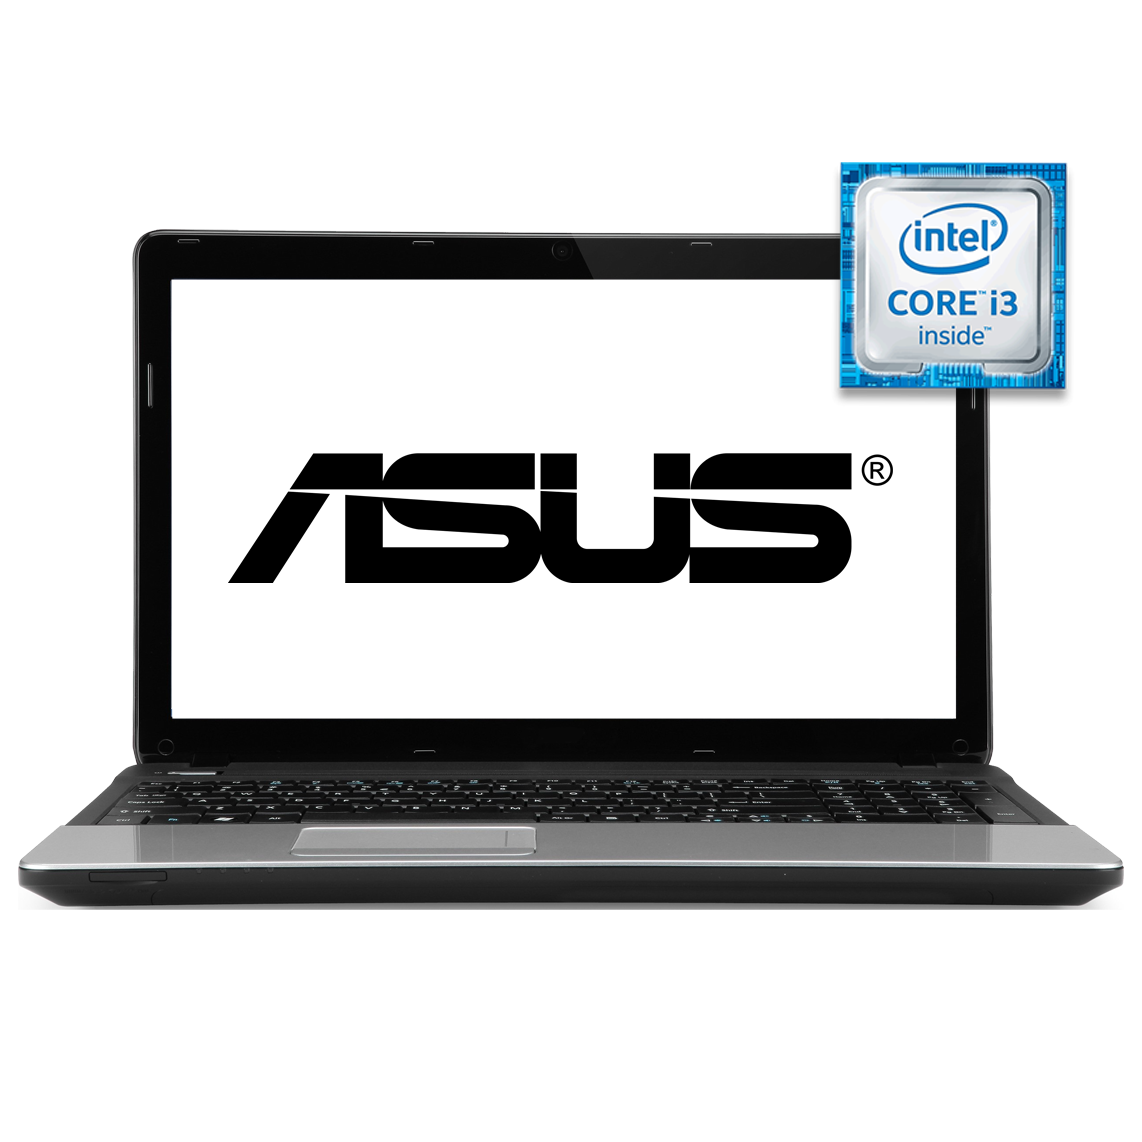 ASUS - 14 inch Core i3 2nd Gen